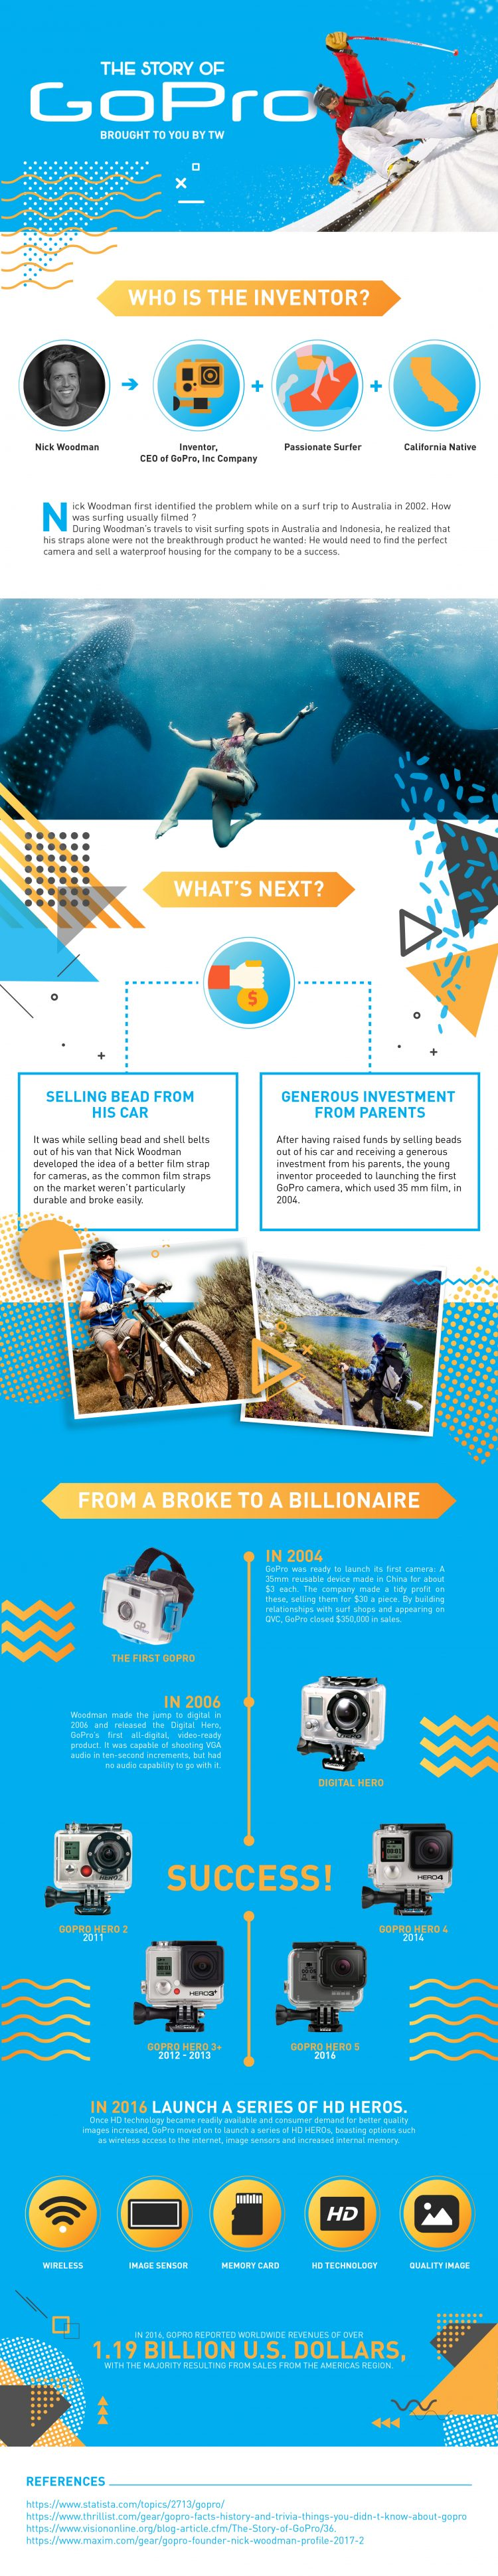 The Story Of Gopro- Infographic